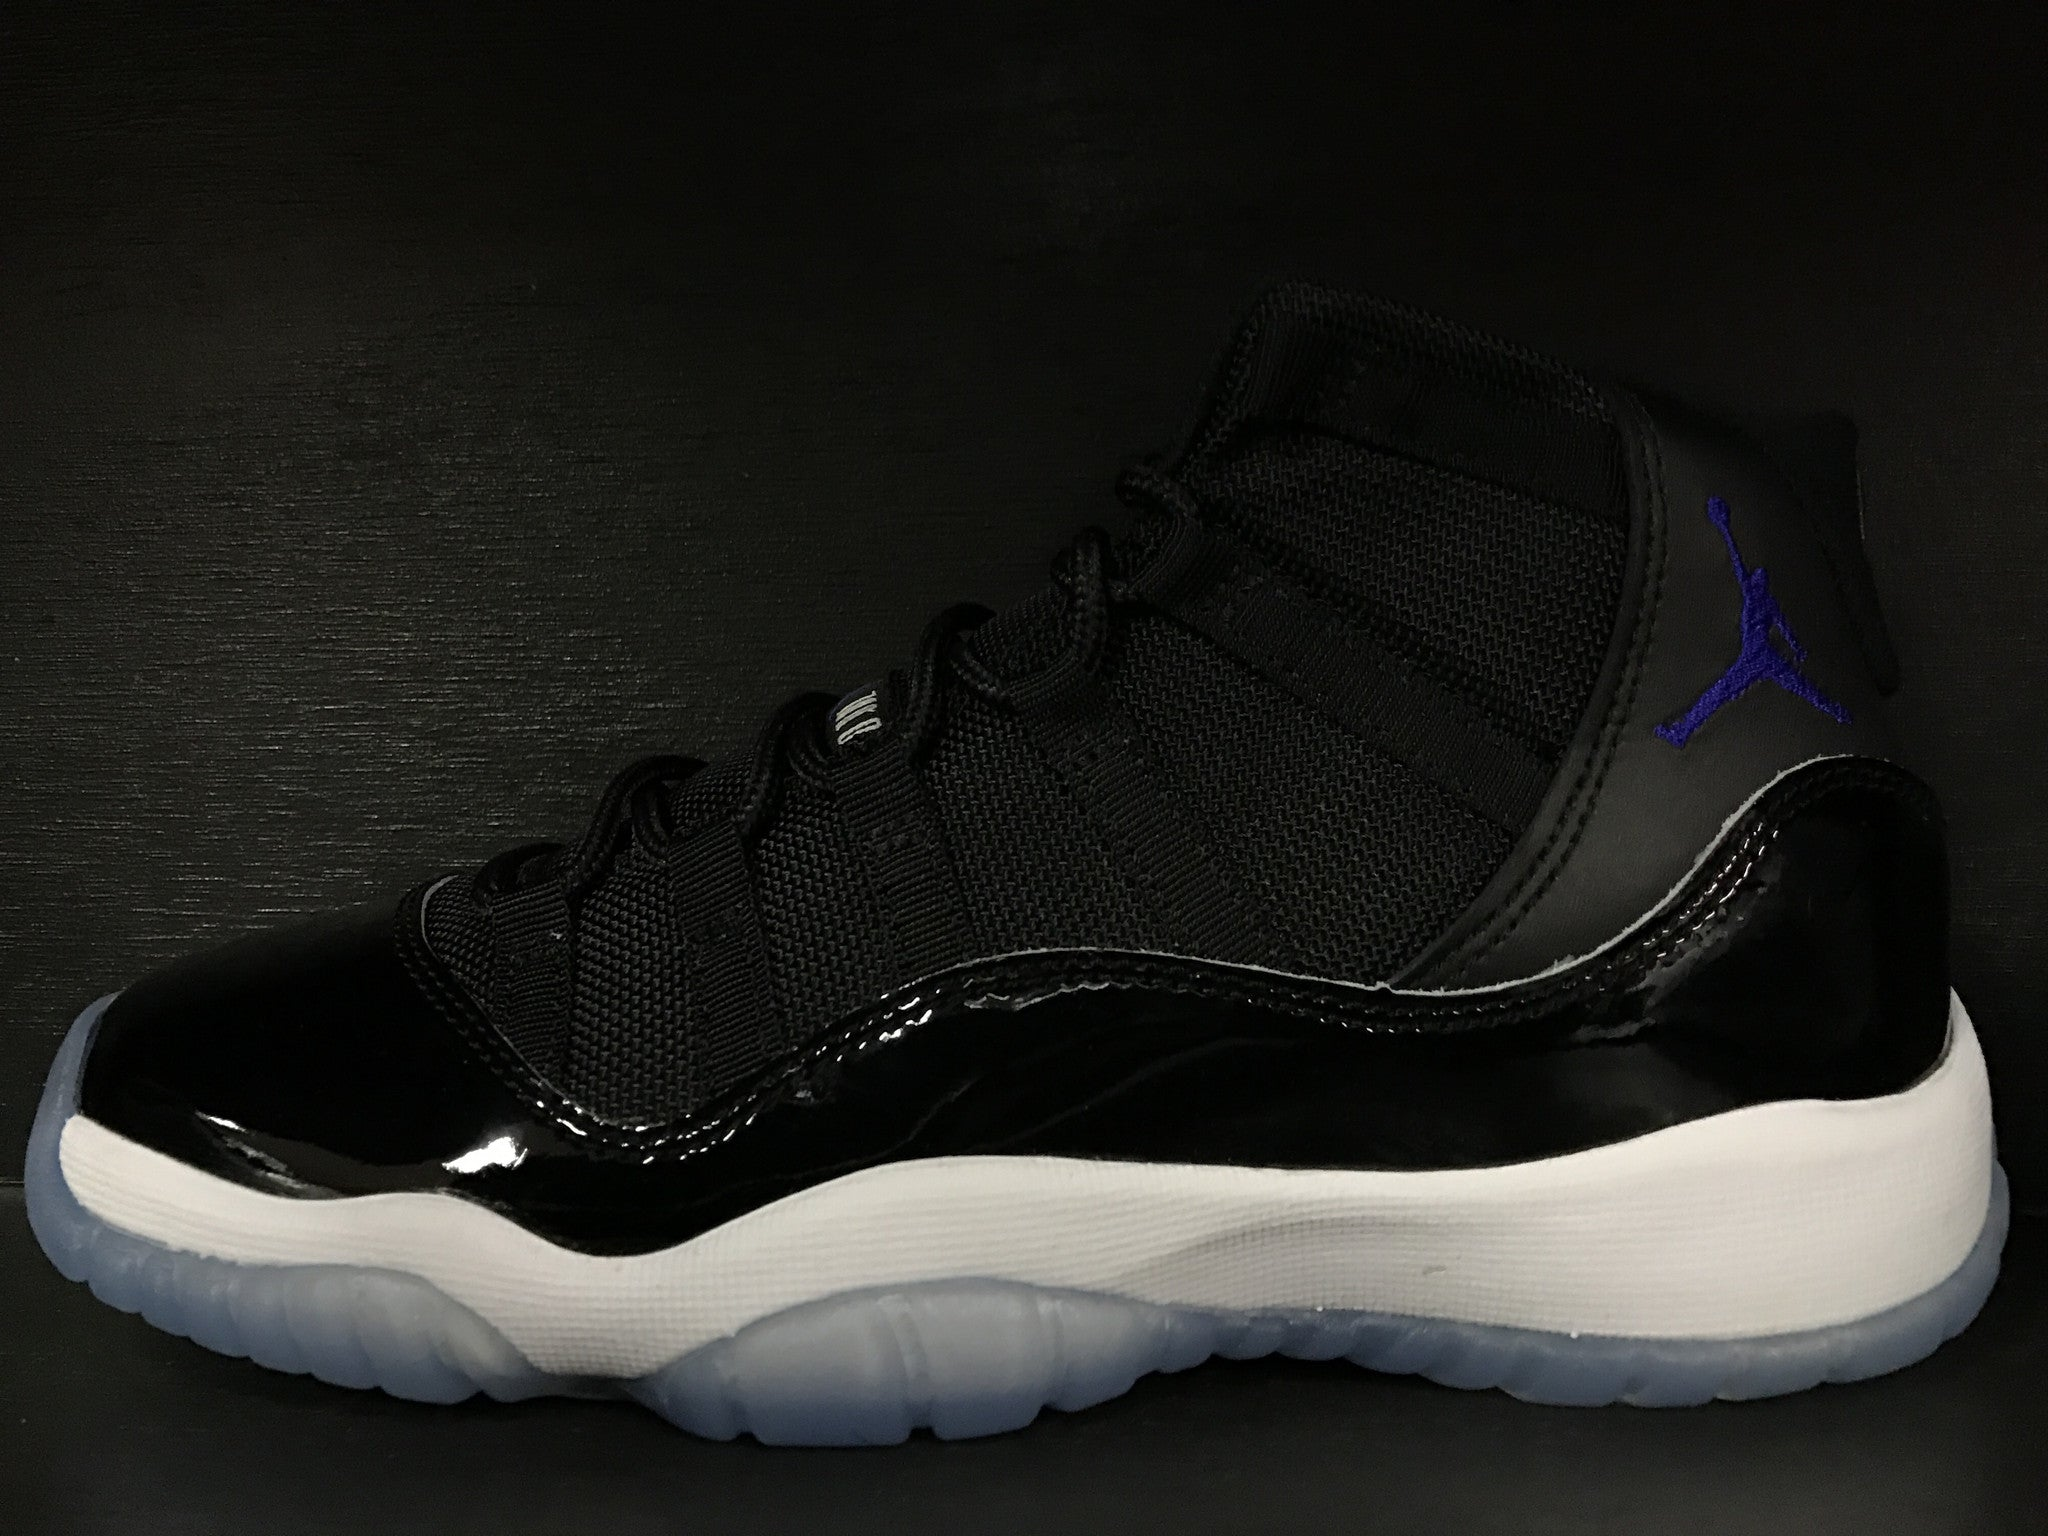 Air Jordan 11 Retro 'Space Jam' GS 2016